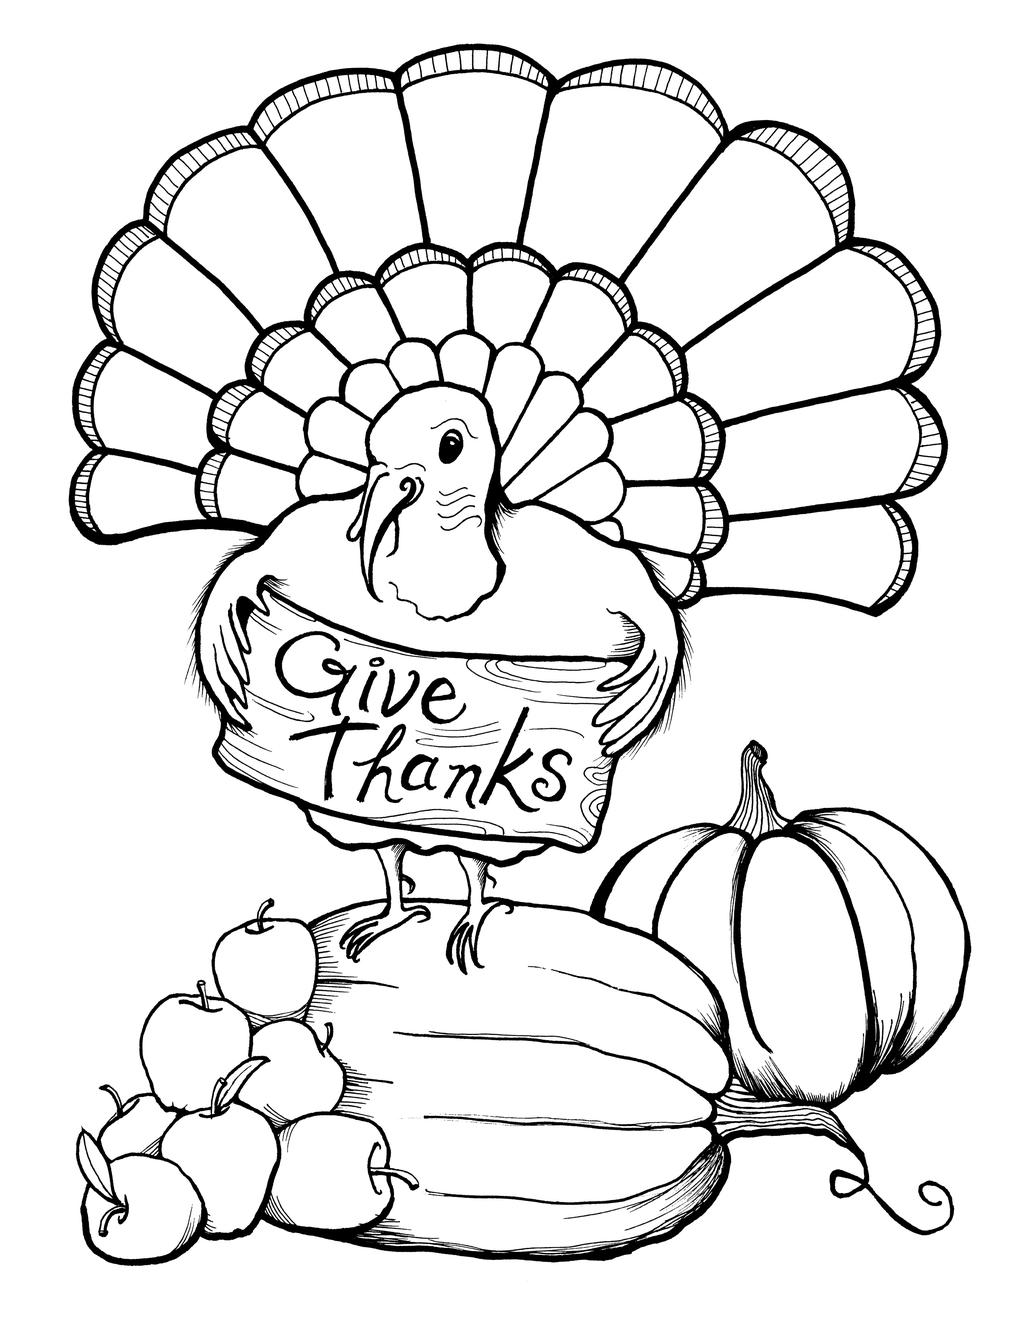 November Coloring Pages Apples And Pumpkins - Free ...